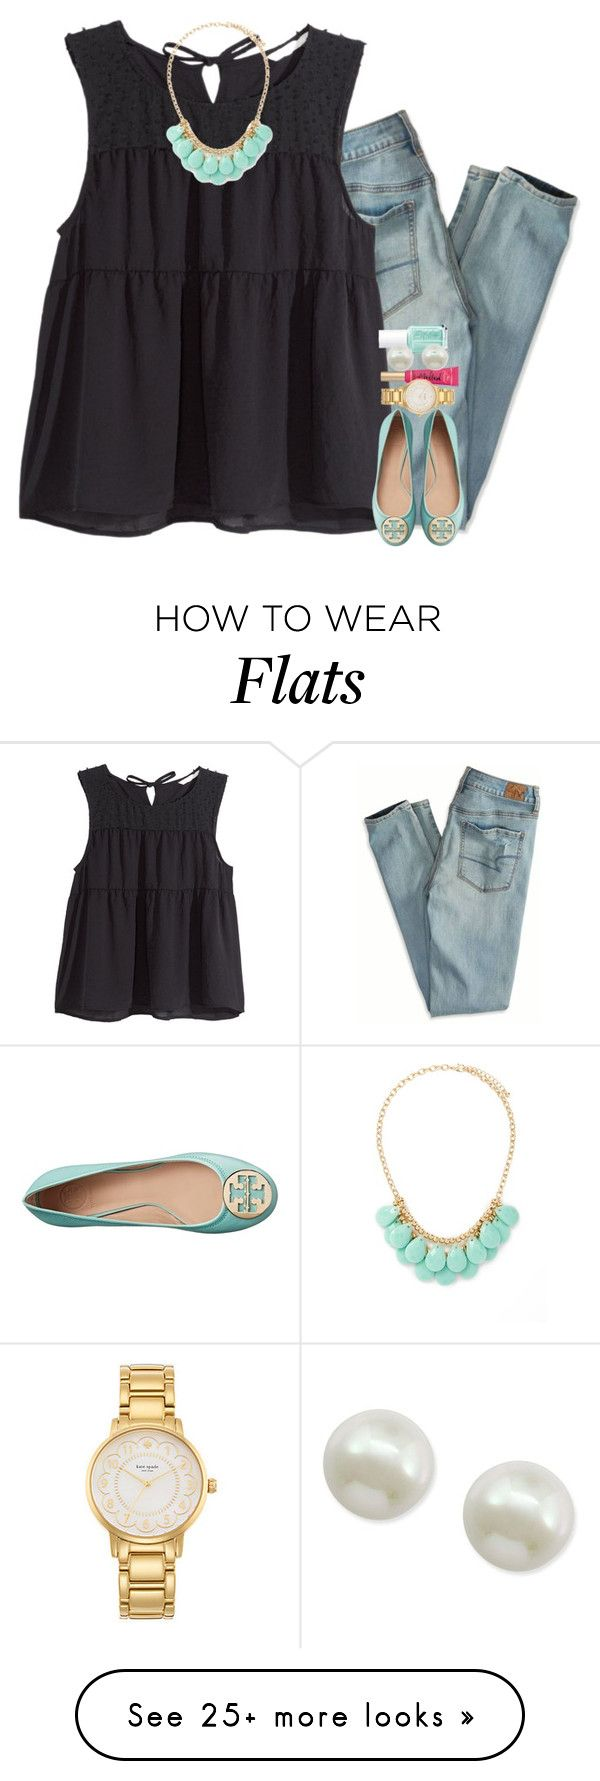 """""""the cutest Tory Burch flats I've ever seen"""" by gourney on Polyvore featuring American Eagle Outfitters, H&M, Forever 21, Tory Burch, Essie, Kate Spade, Majorica, women's clothing, women's fashion and women"""